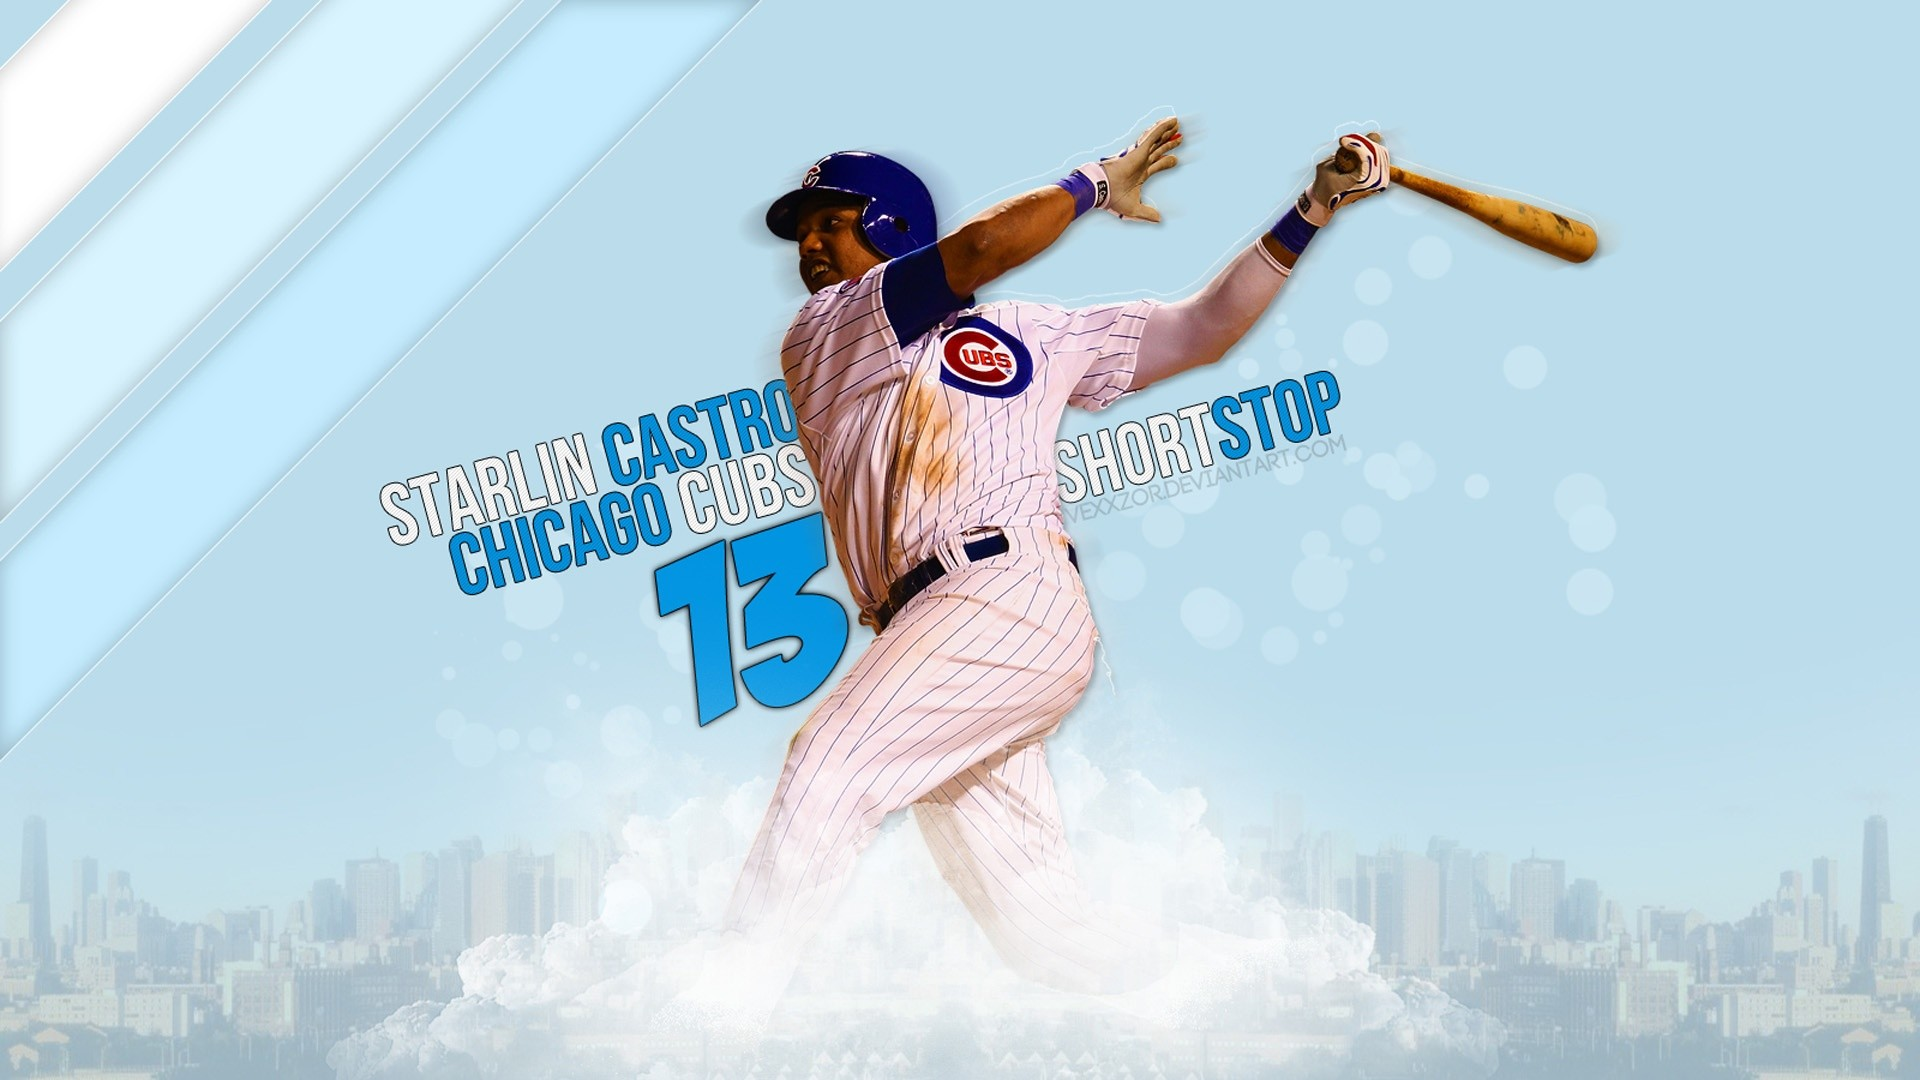 1920x1080 Chicago Cubs Wallpapers